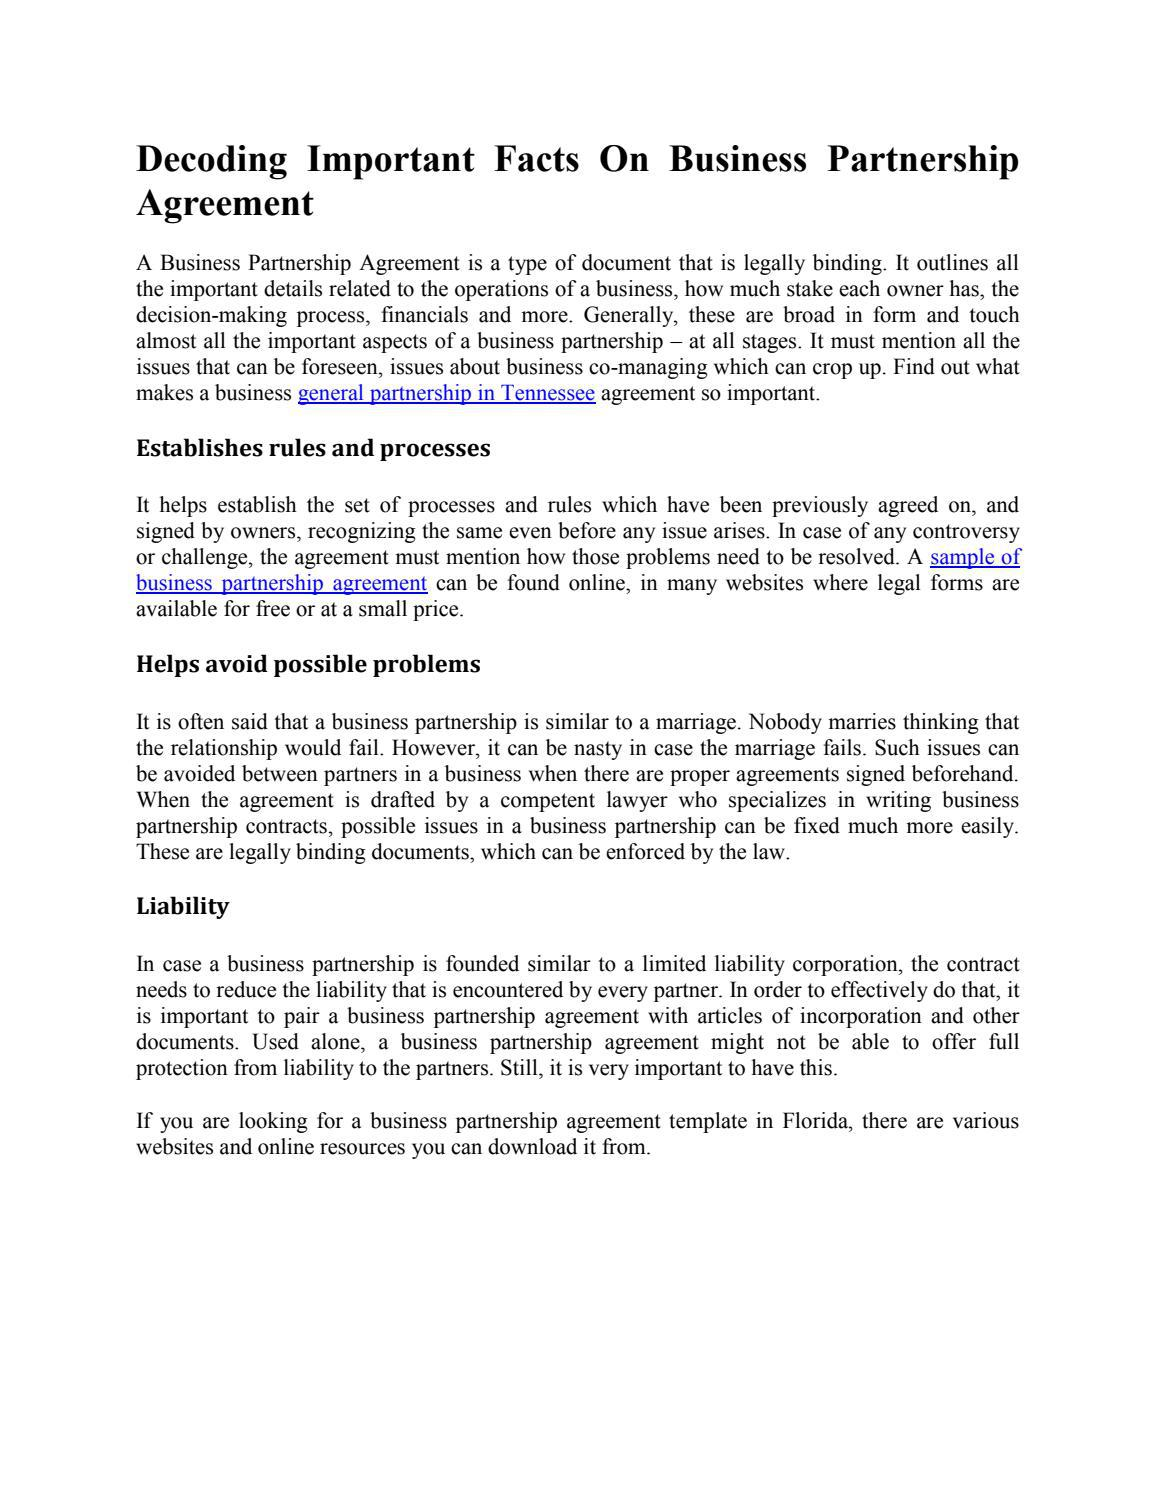 With the help of this agreement template in word , you can define the restrictions, terms, and conditions of … Decoding Important Facts On Business Partnership Agreement By Carl Glendon Issuu